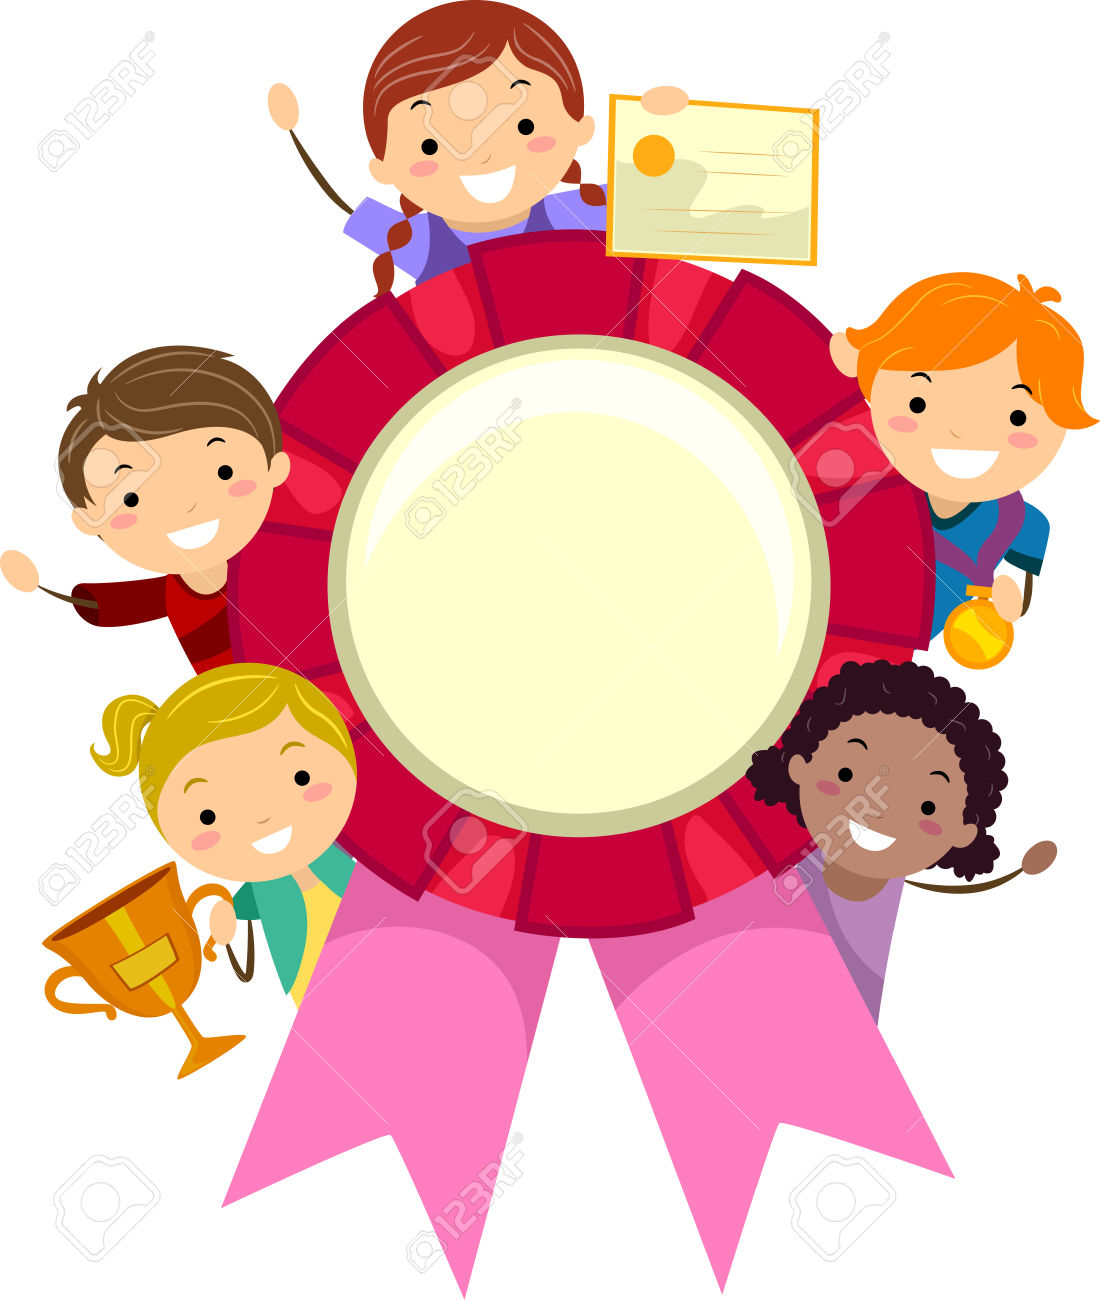 1100x1300 Free Recognition Award Clipart